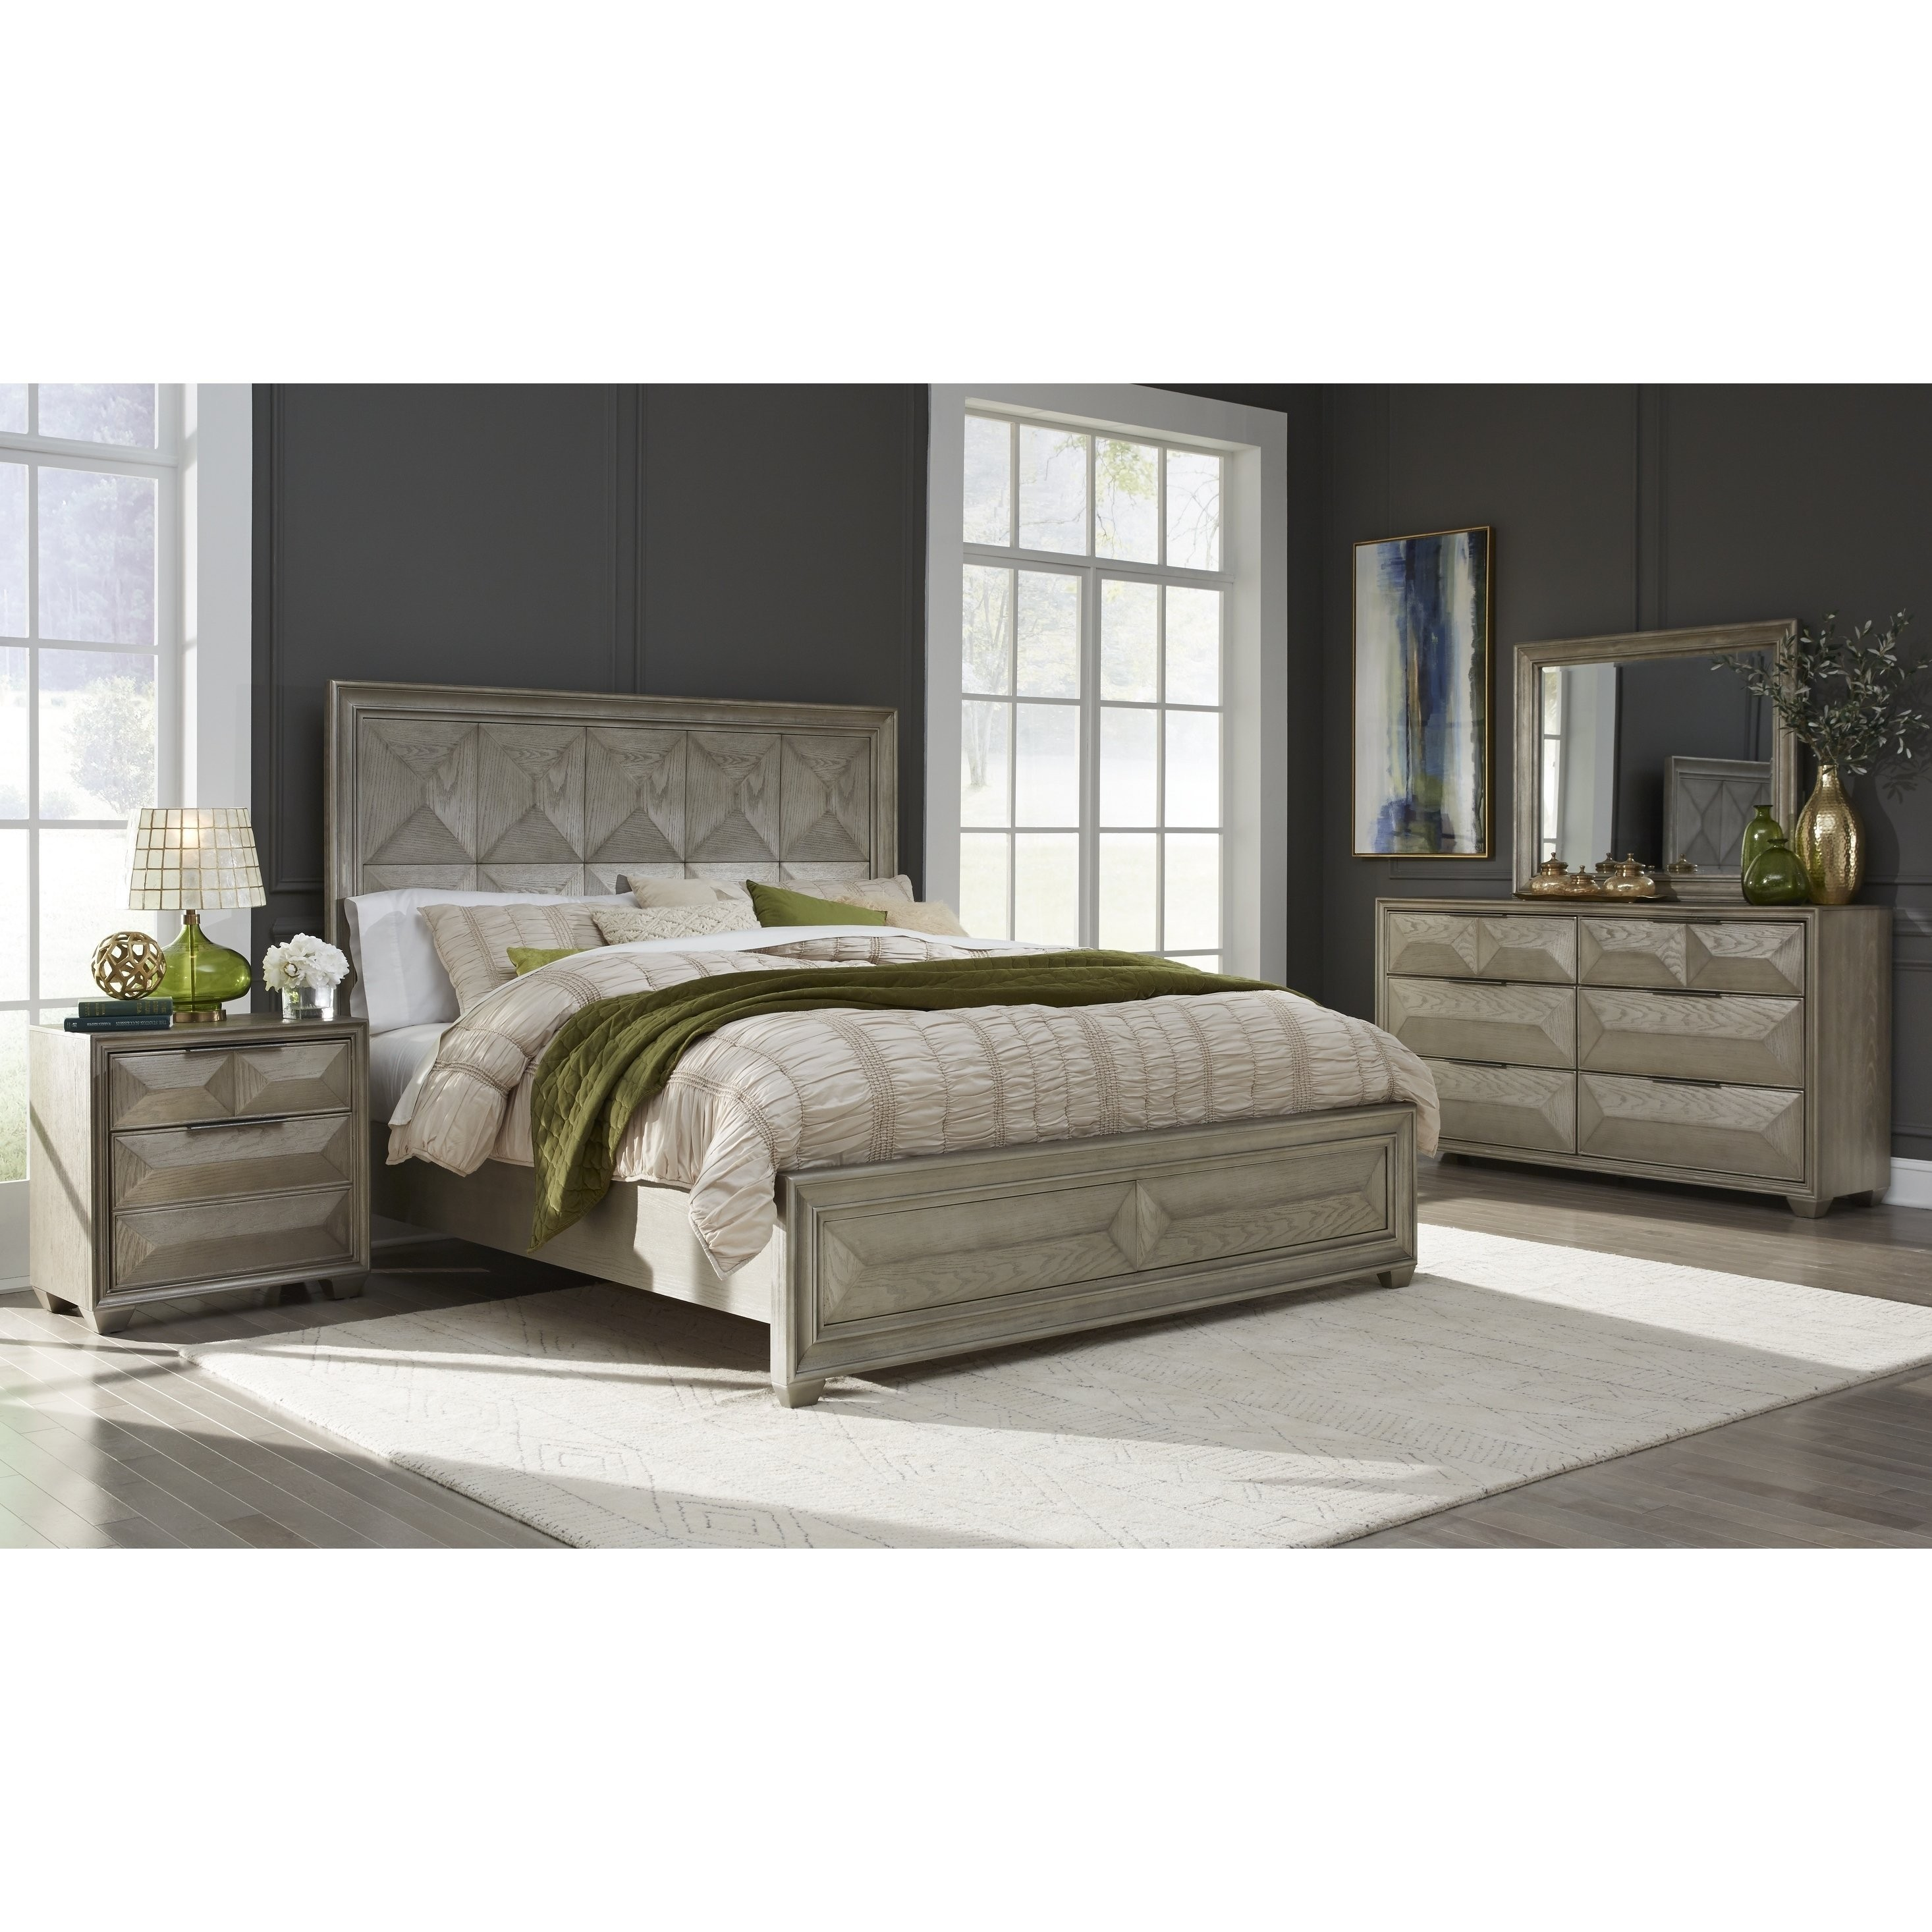 Bedroom Furniture Usa: Global Furniture USA Soho Silver Wood Queen Bed